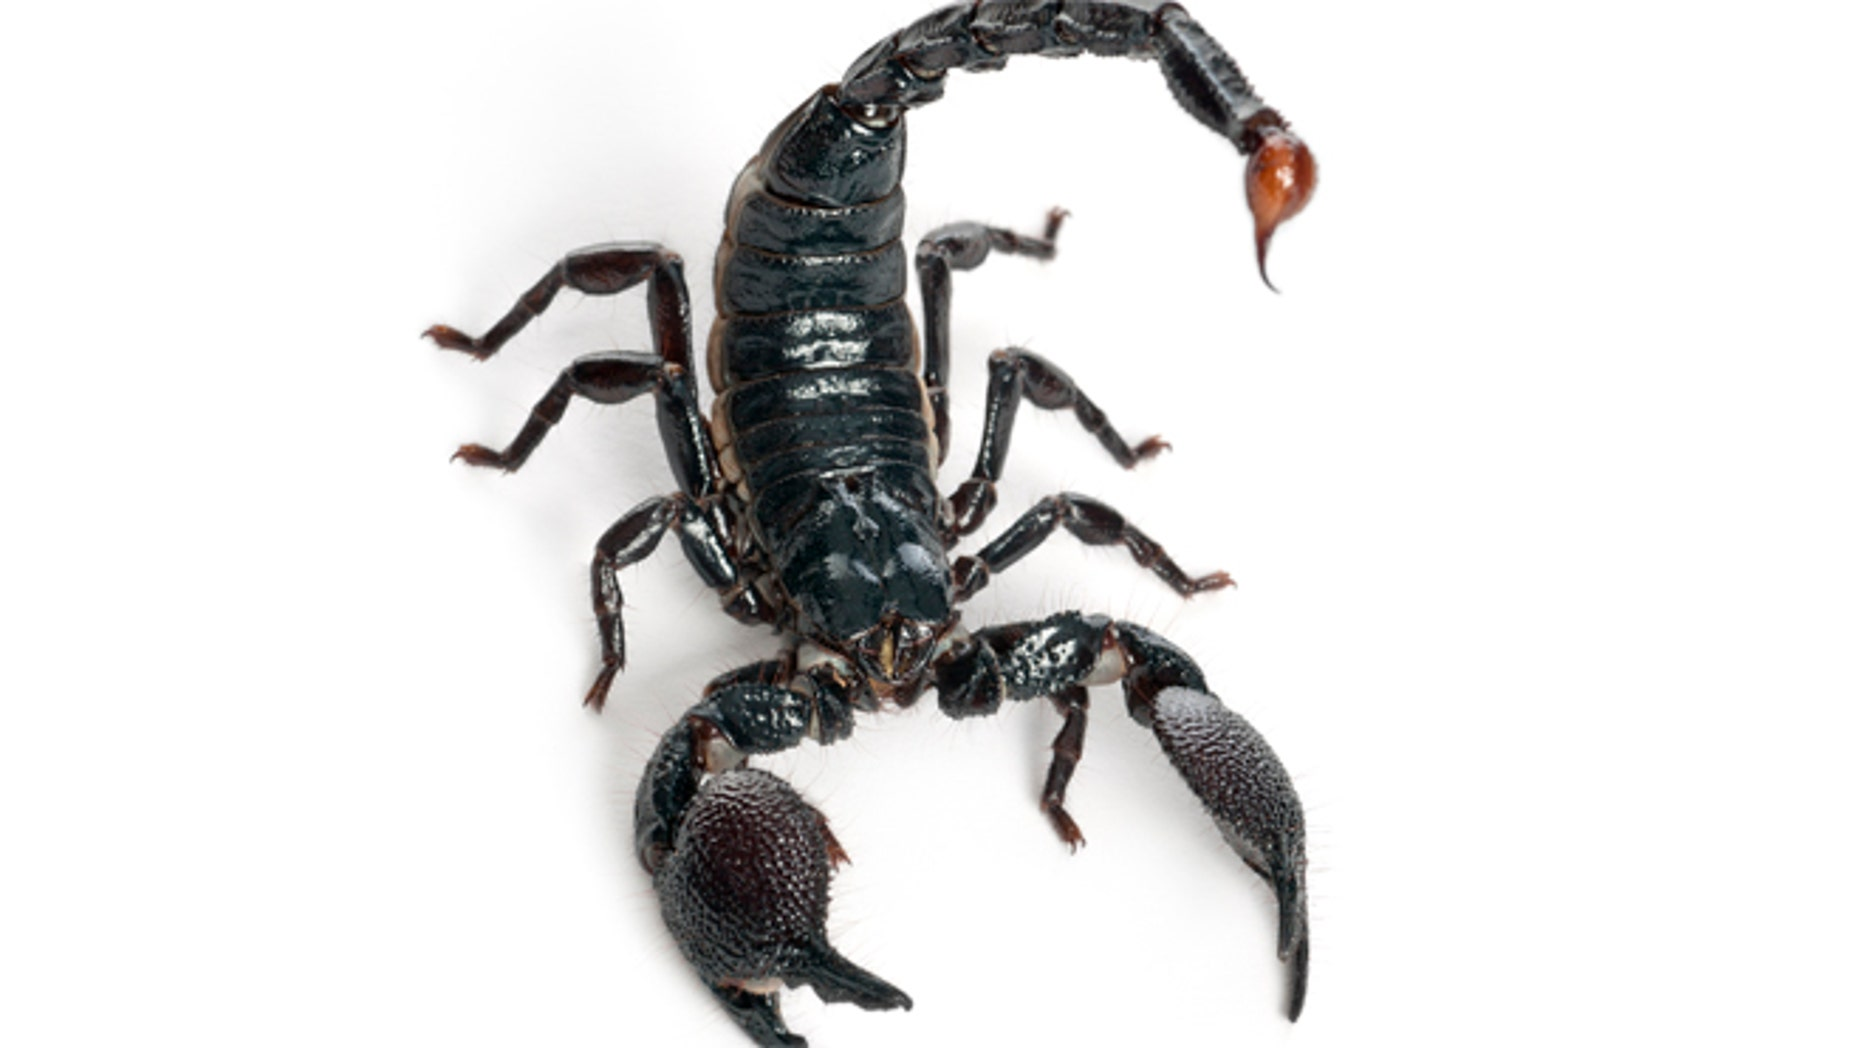 emperor scorpion - Pandinus imperator (1 year old)